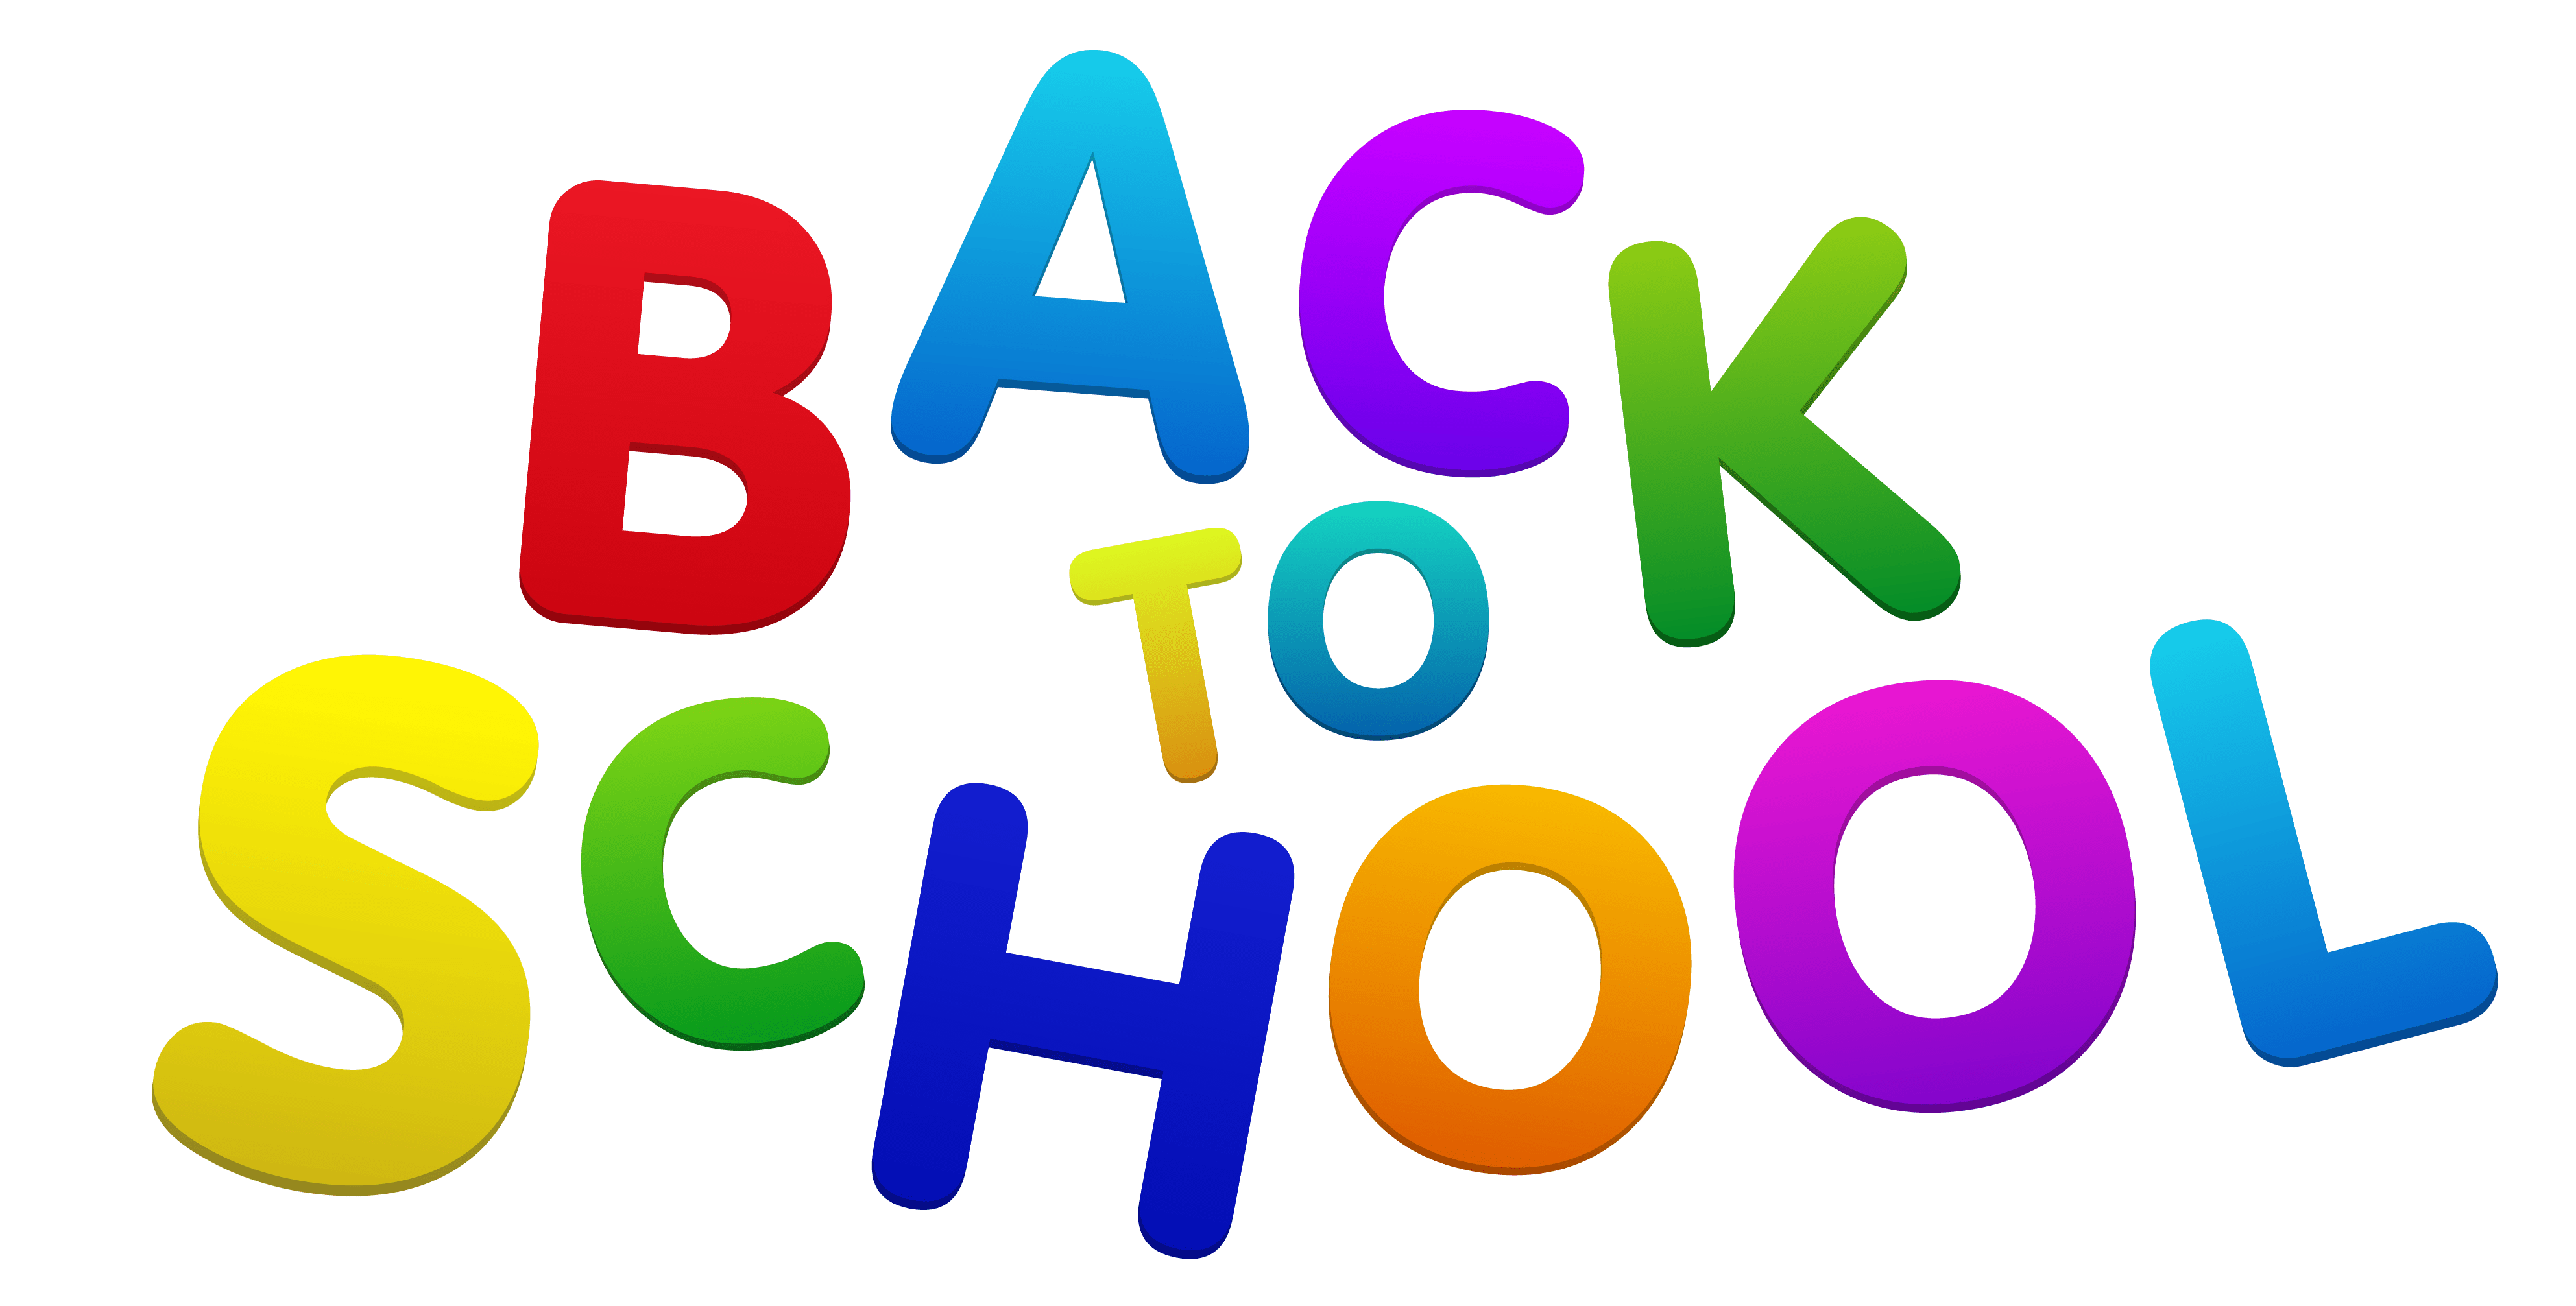 School Supplies Background Png Back To School Pictures Images Graphics For Facebook